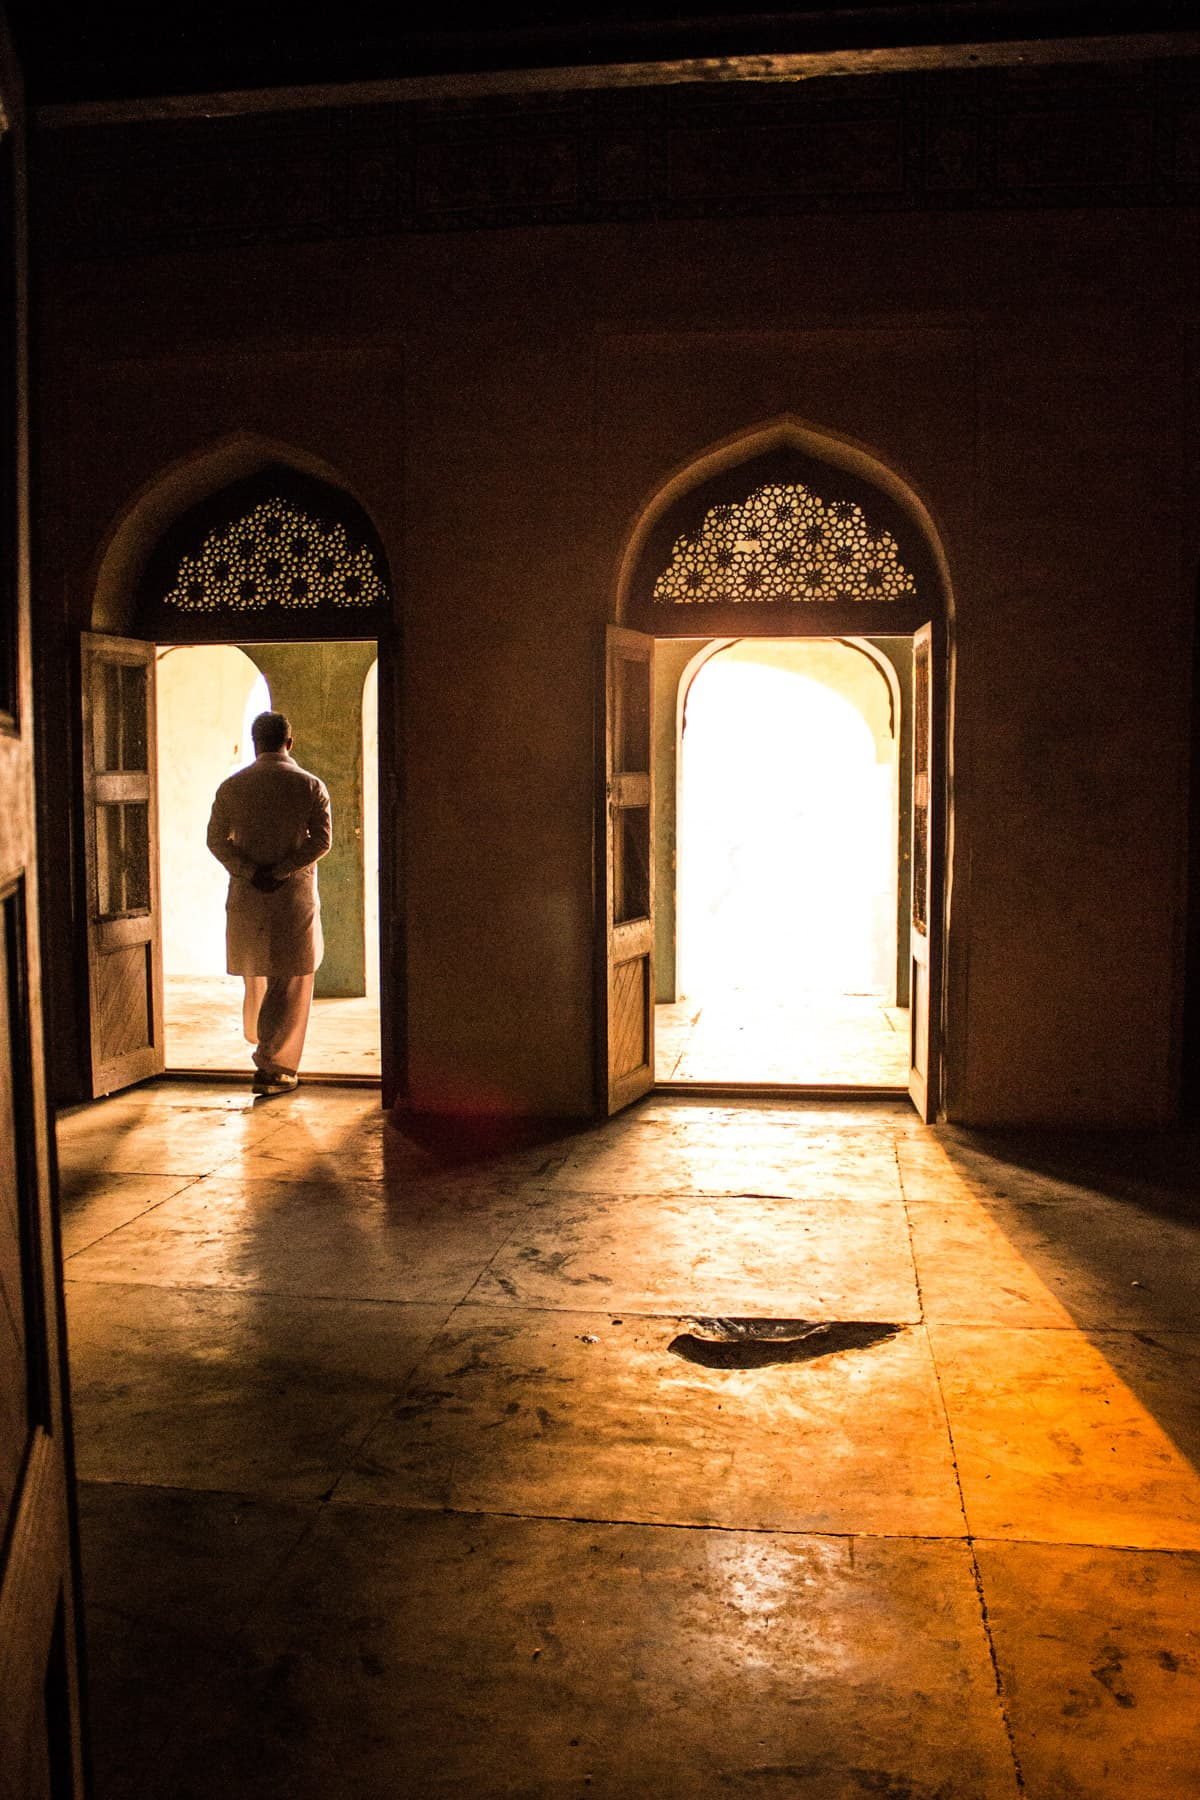 Light passing through the doors of Sheesh Mahal. Photo by Shameen Khan.